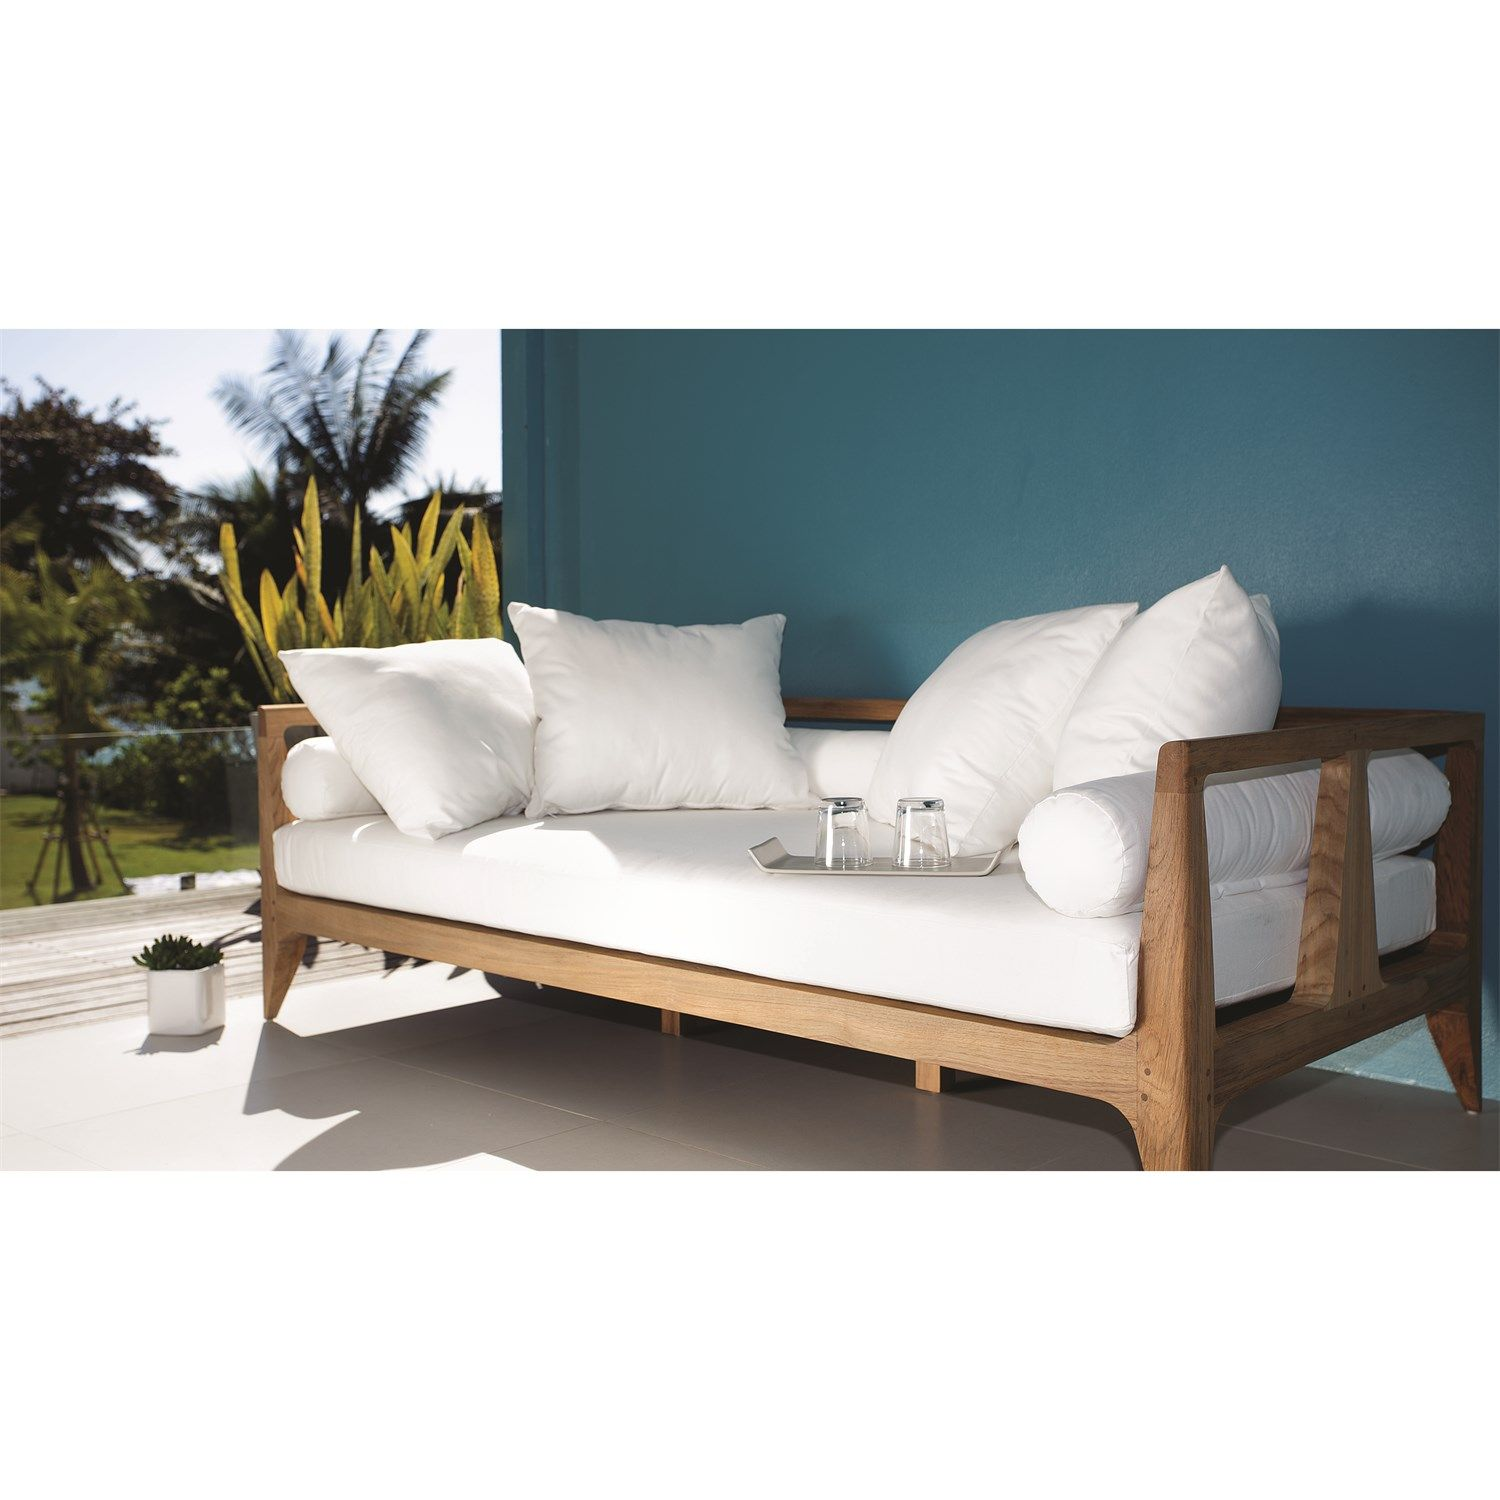 Oasiq 370 d x limited 300 daybed cushion set